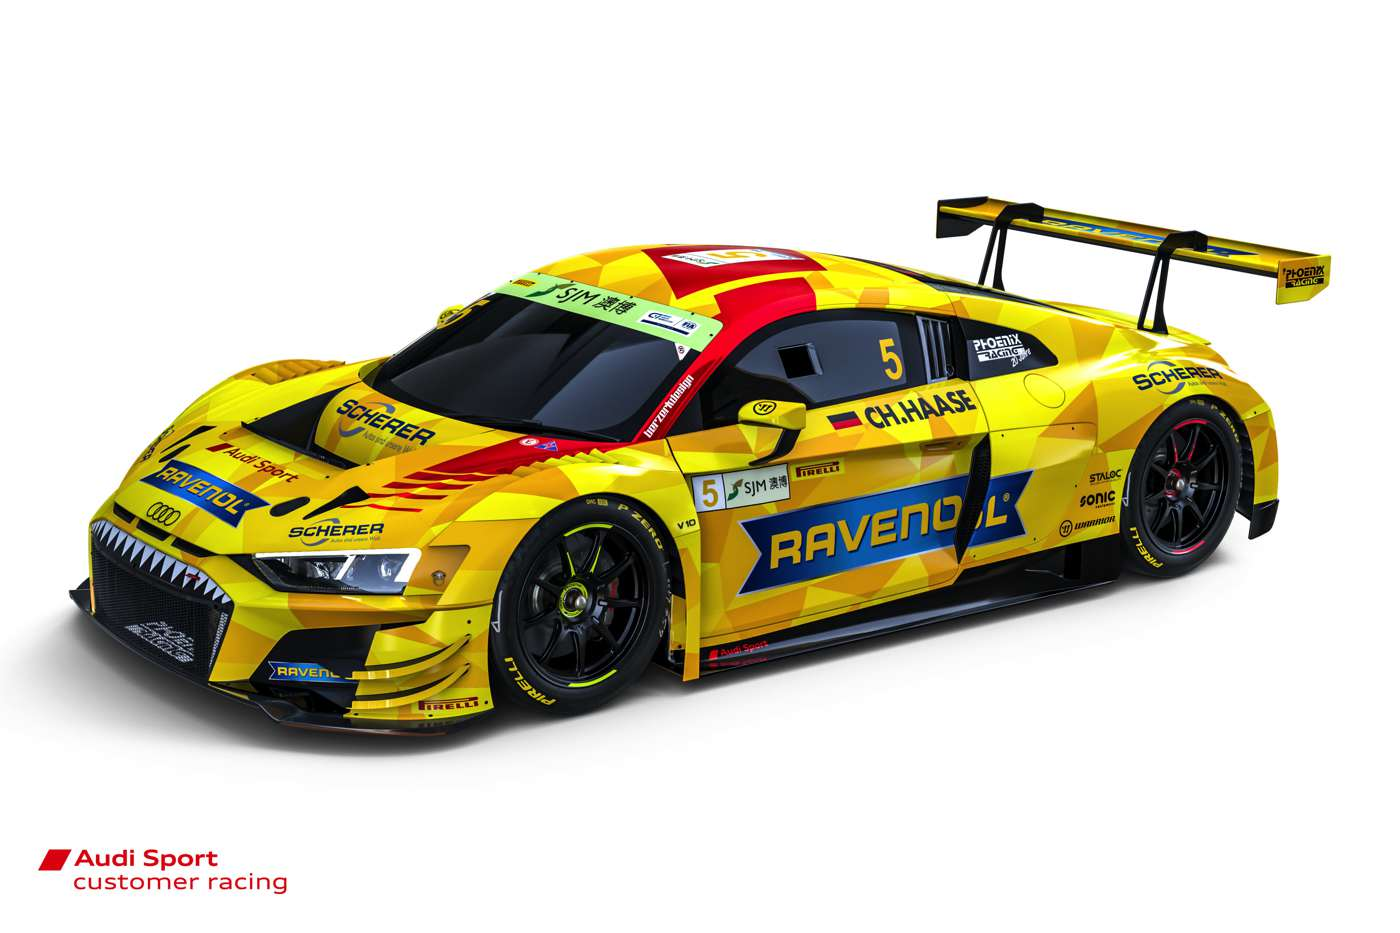 Audi R8 LMS #5 (Phoenix Racing), Christopher Haase